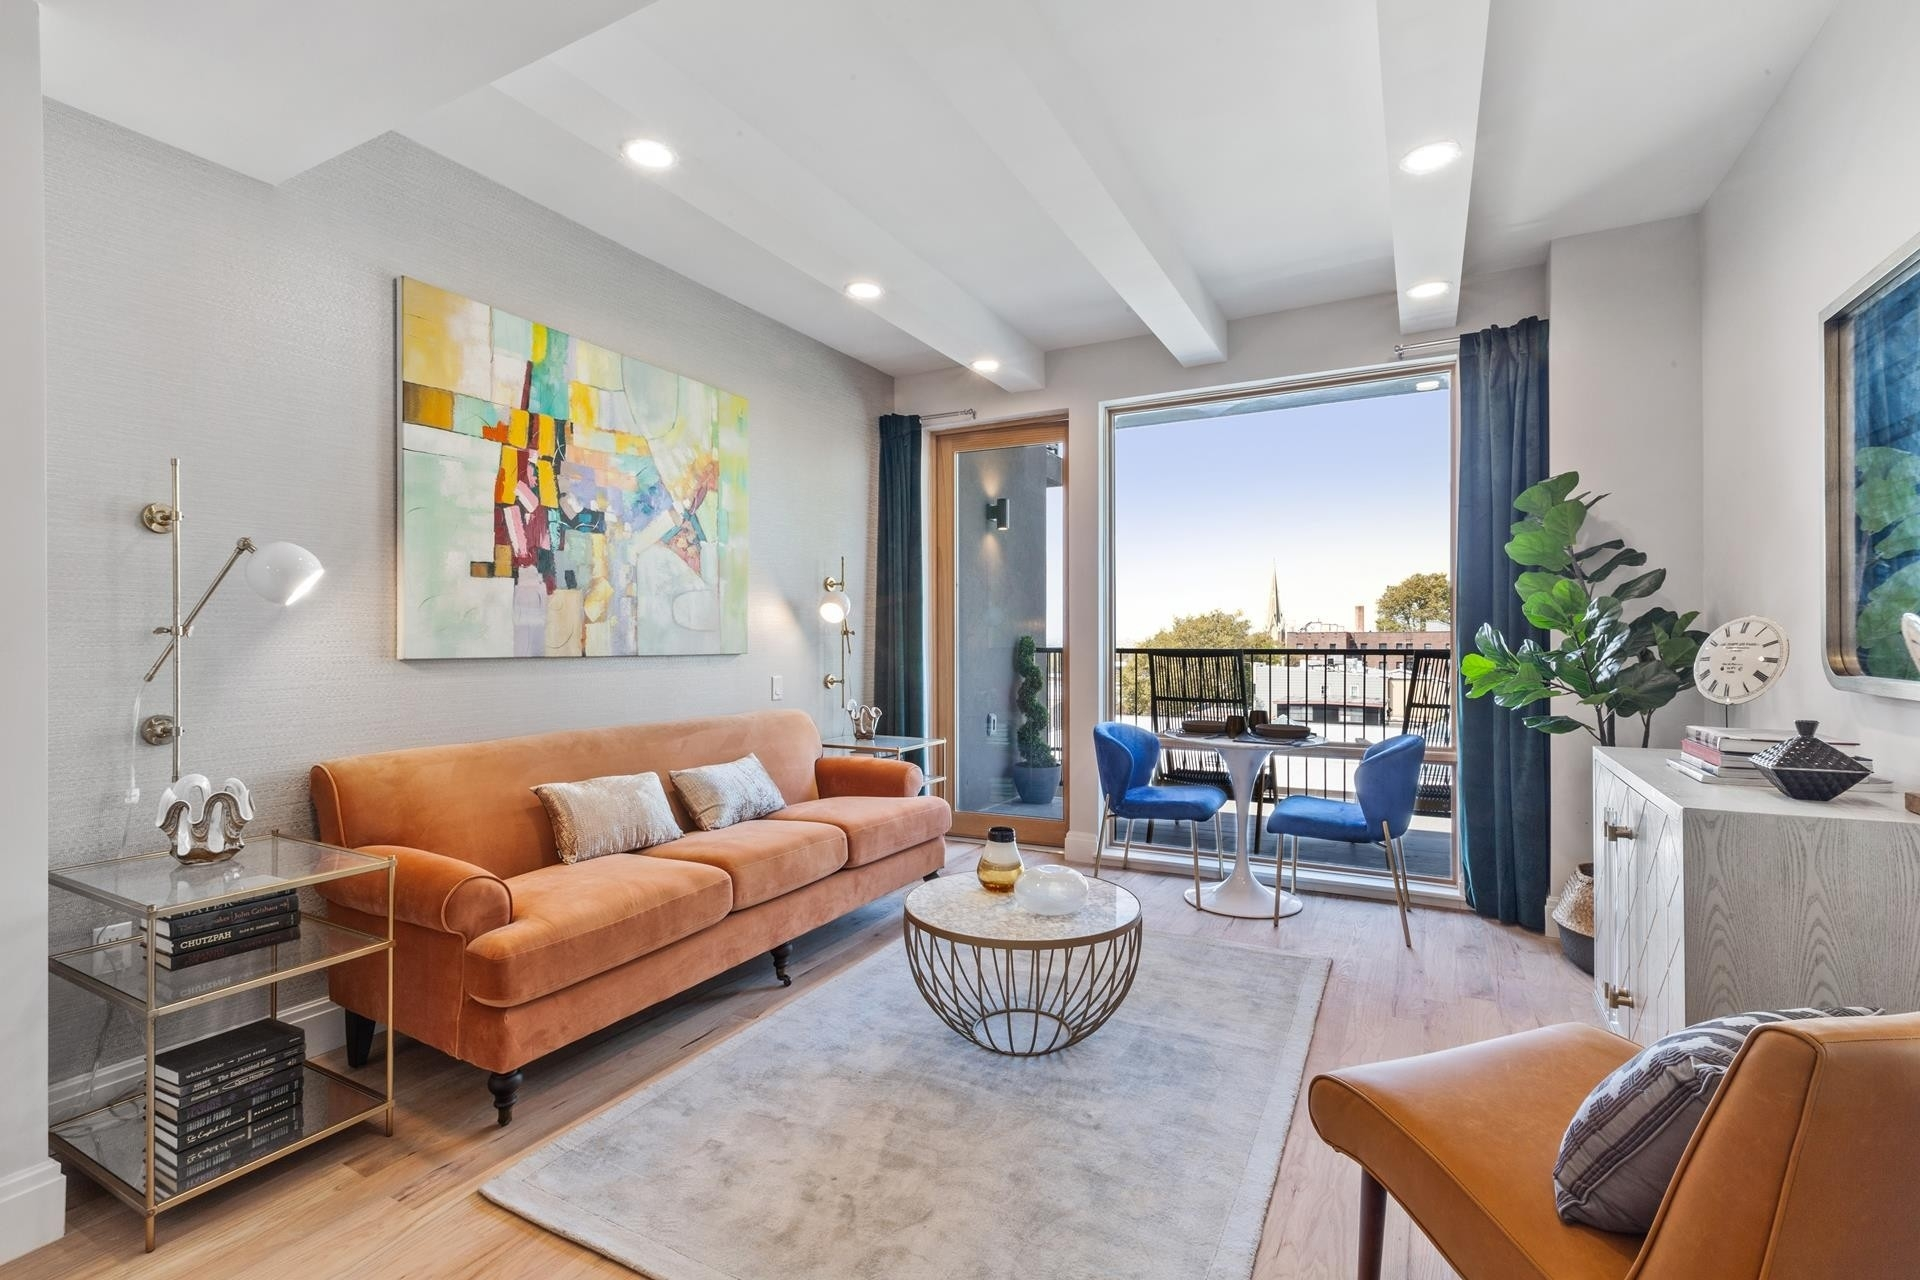 3. Condominiums for Sale at 734 Fifth Avenue, 6B Greenwood, Brooklyn, NY 11232